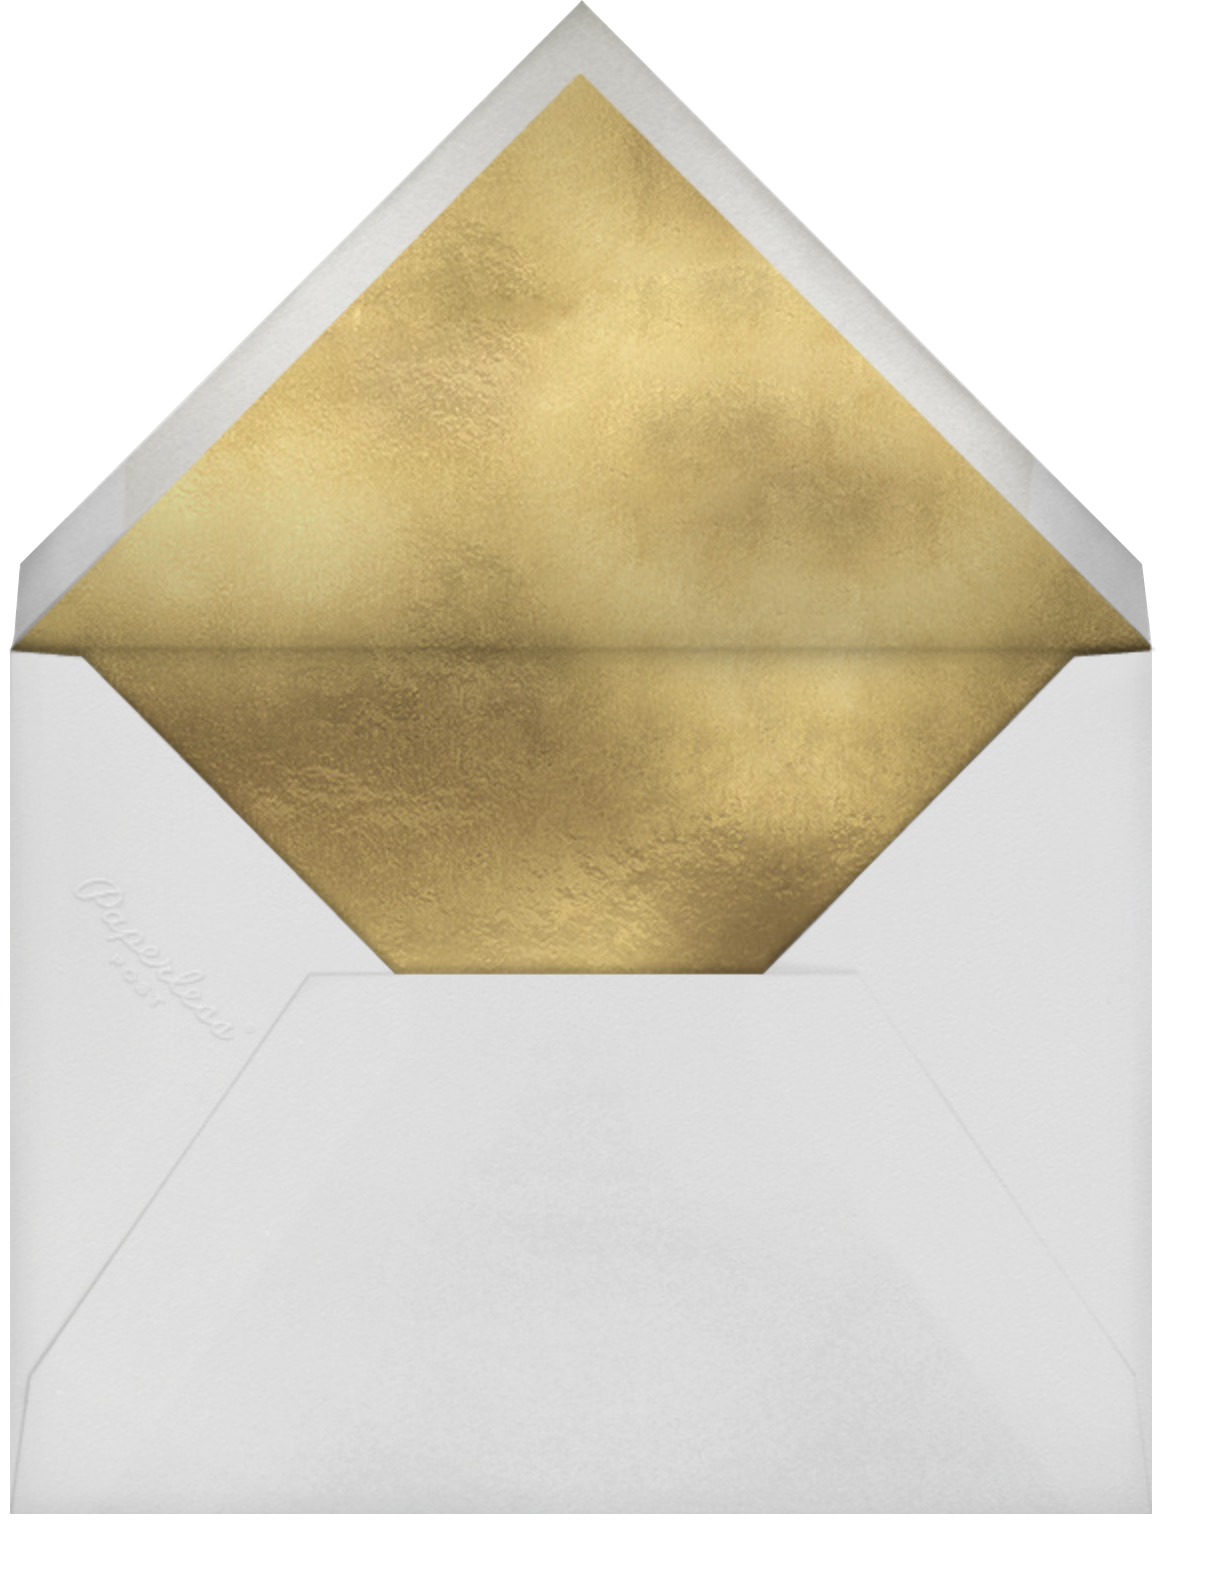 Best Dad Ever - Rifle Paper Co. - Envelope